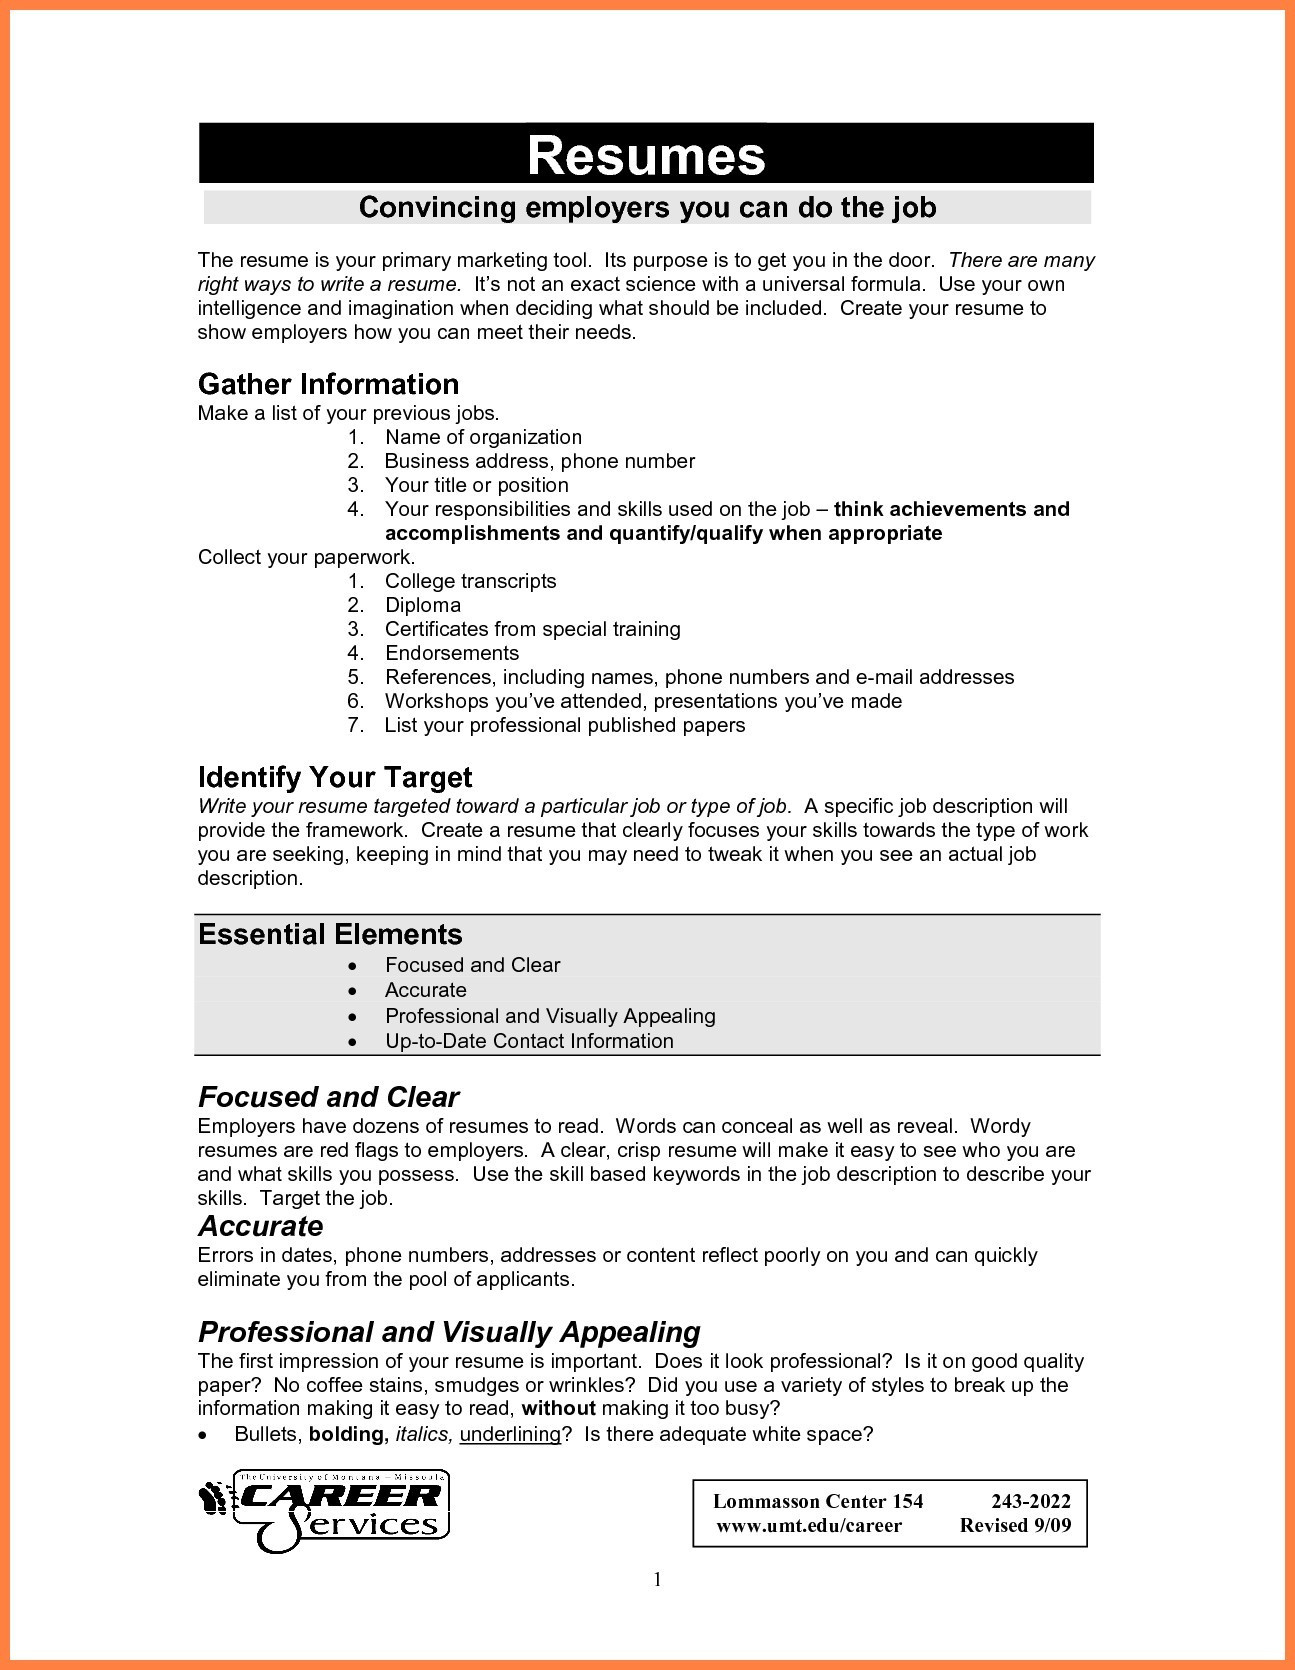 Visually Appealing Resume - Examples Resume for Job Application Fresh How to Write A Resume